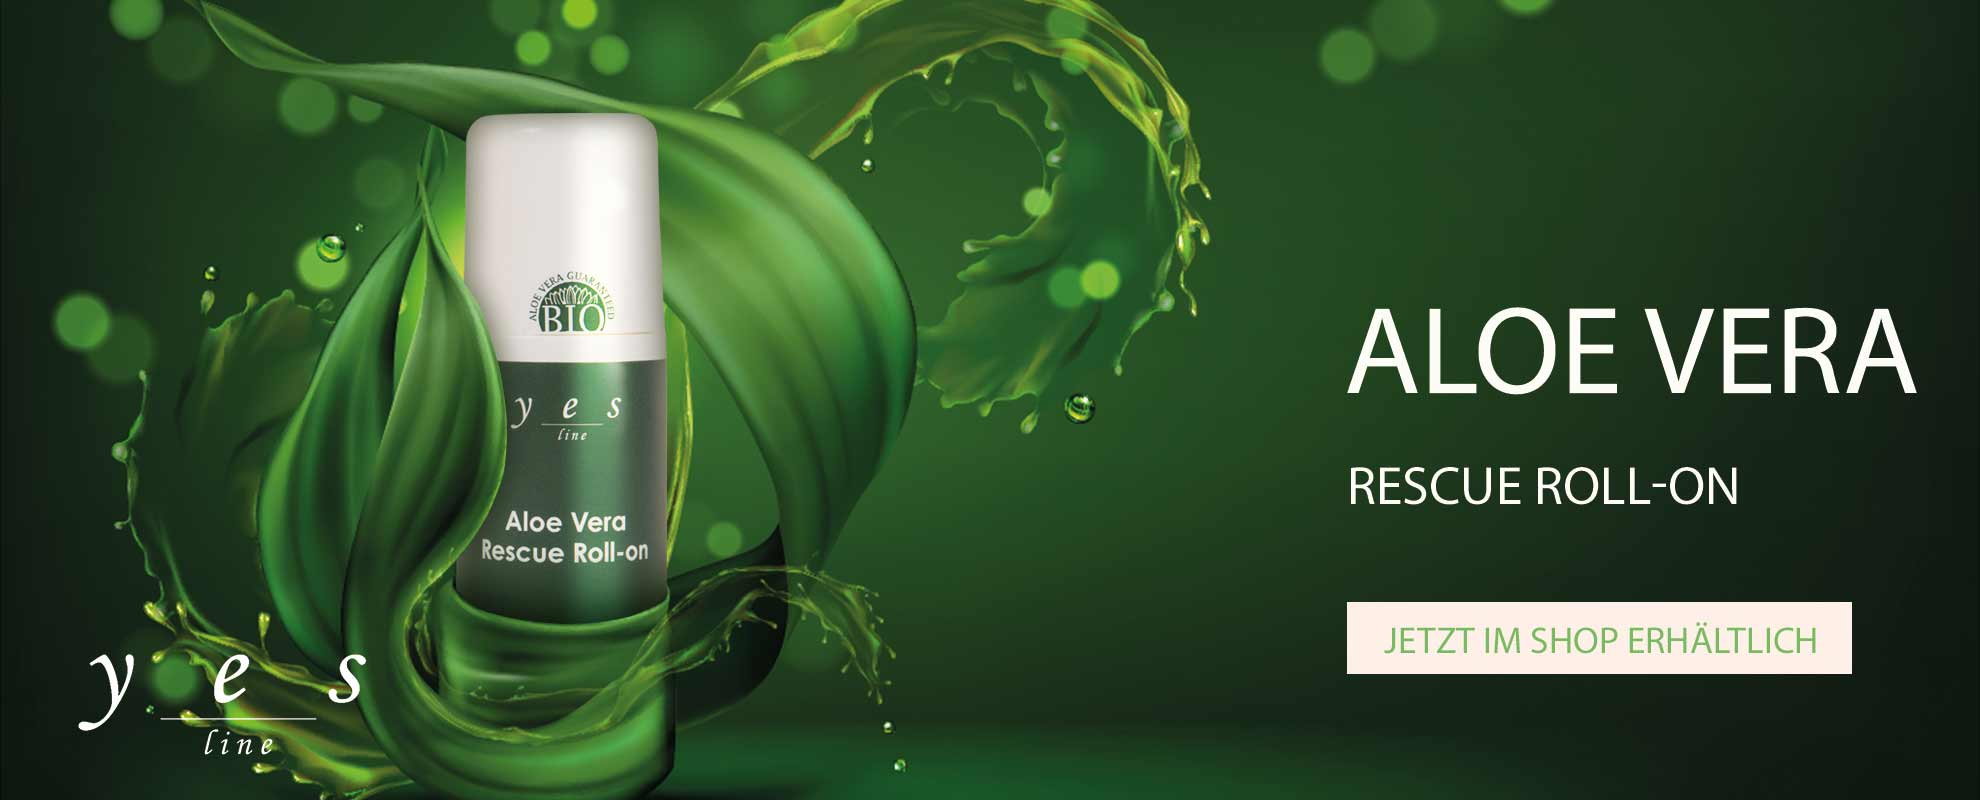 Banner Aloe Vera Rescue Roll-on